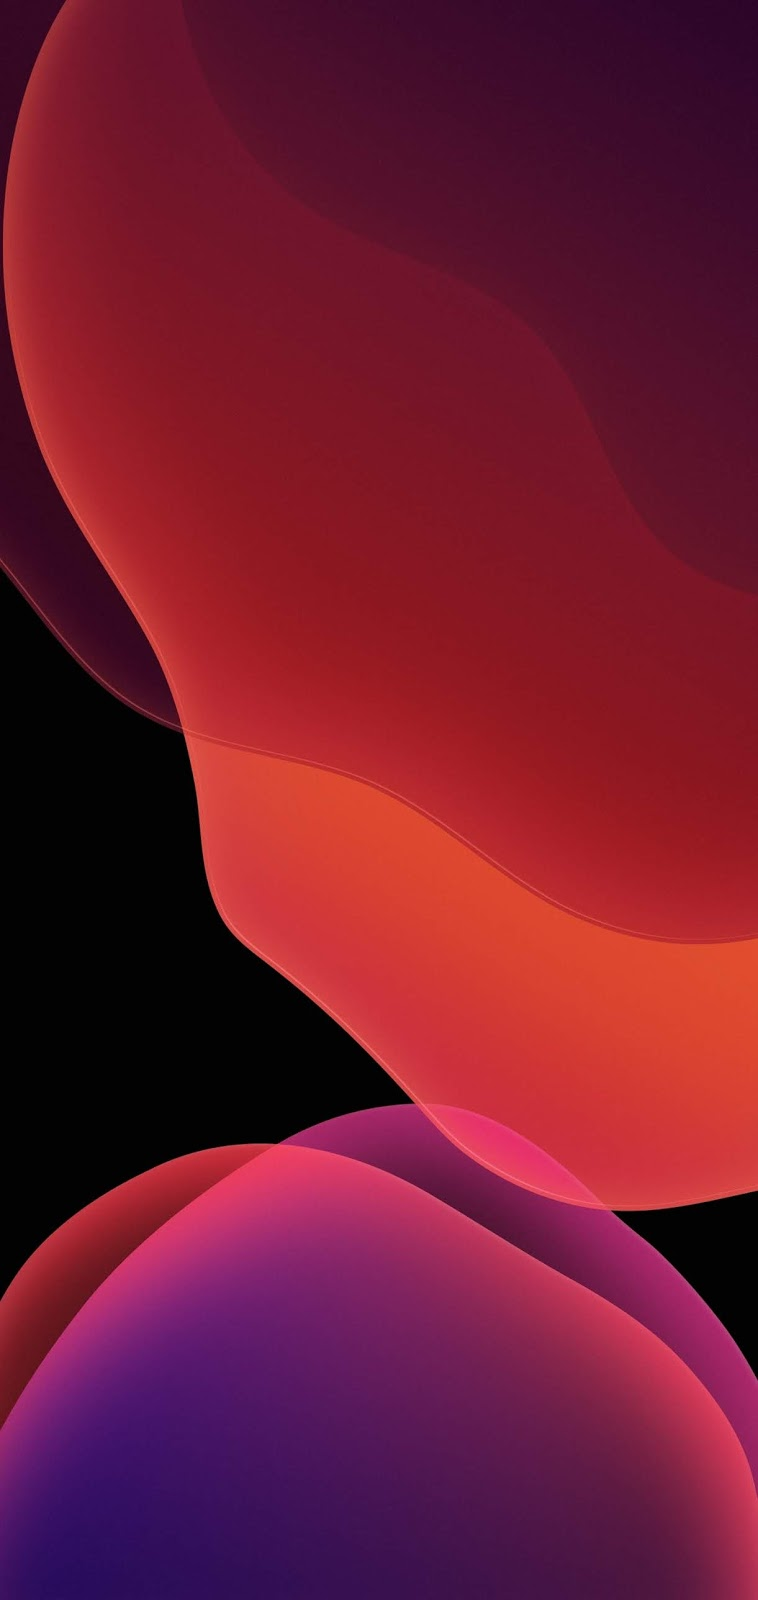 iOS 13 Wallpapers (8 colors)